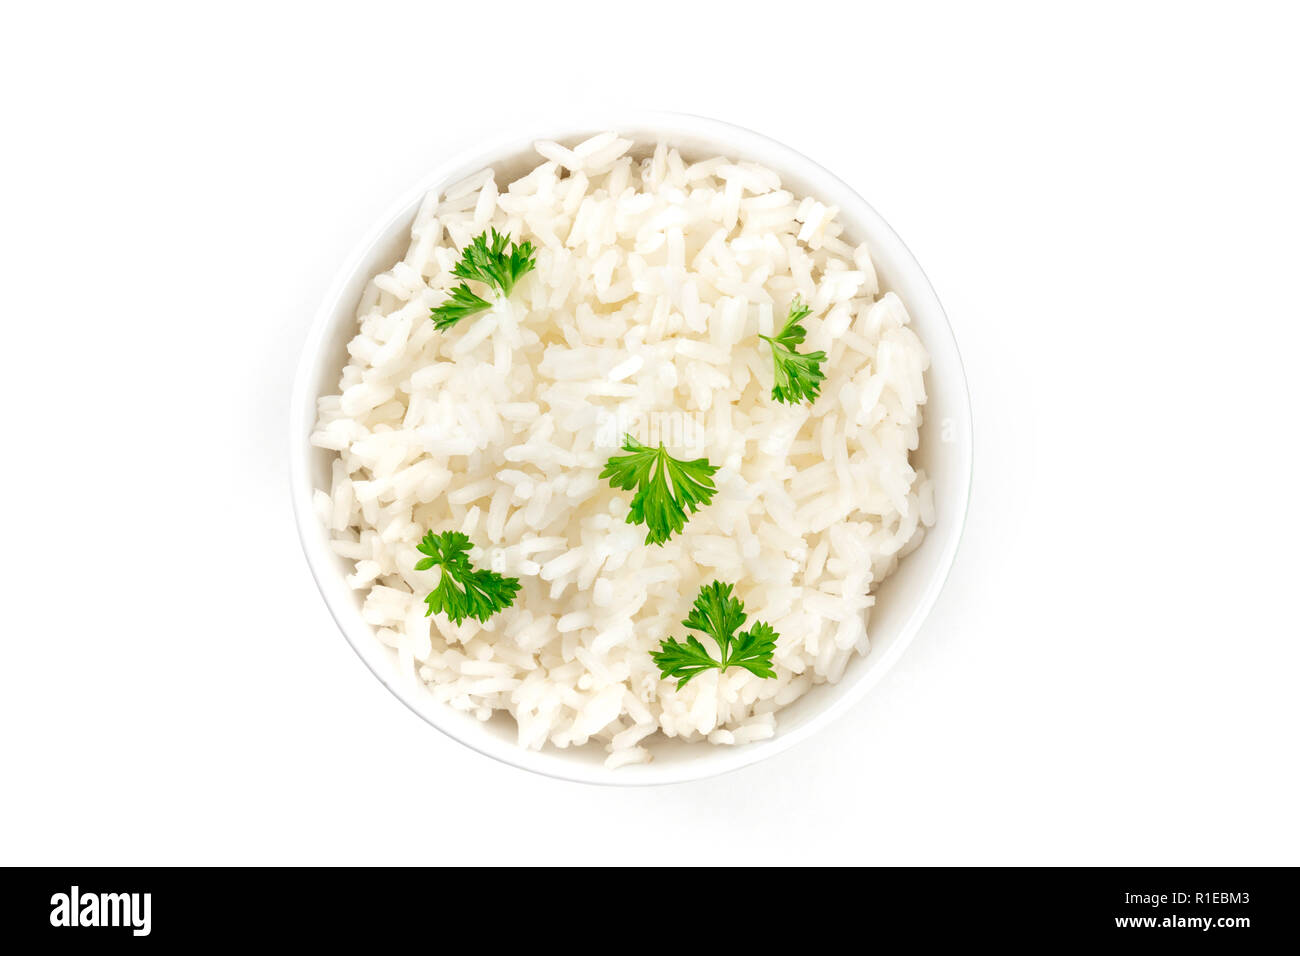 A photo of a bowl of cooked white long rice, shot from the top on a white background with a place for text - Stock Image